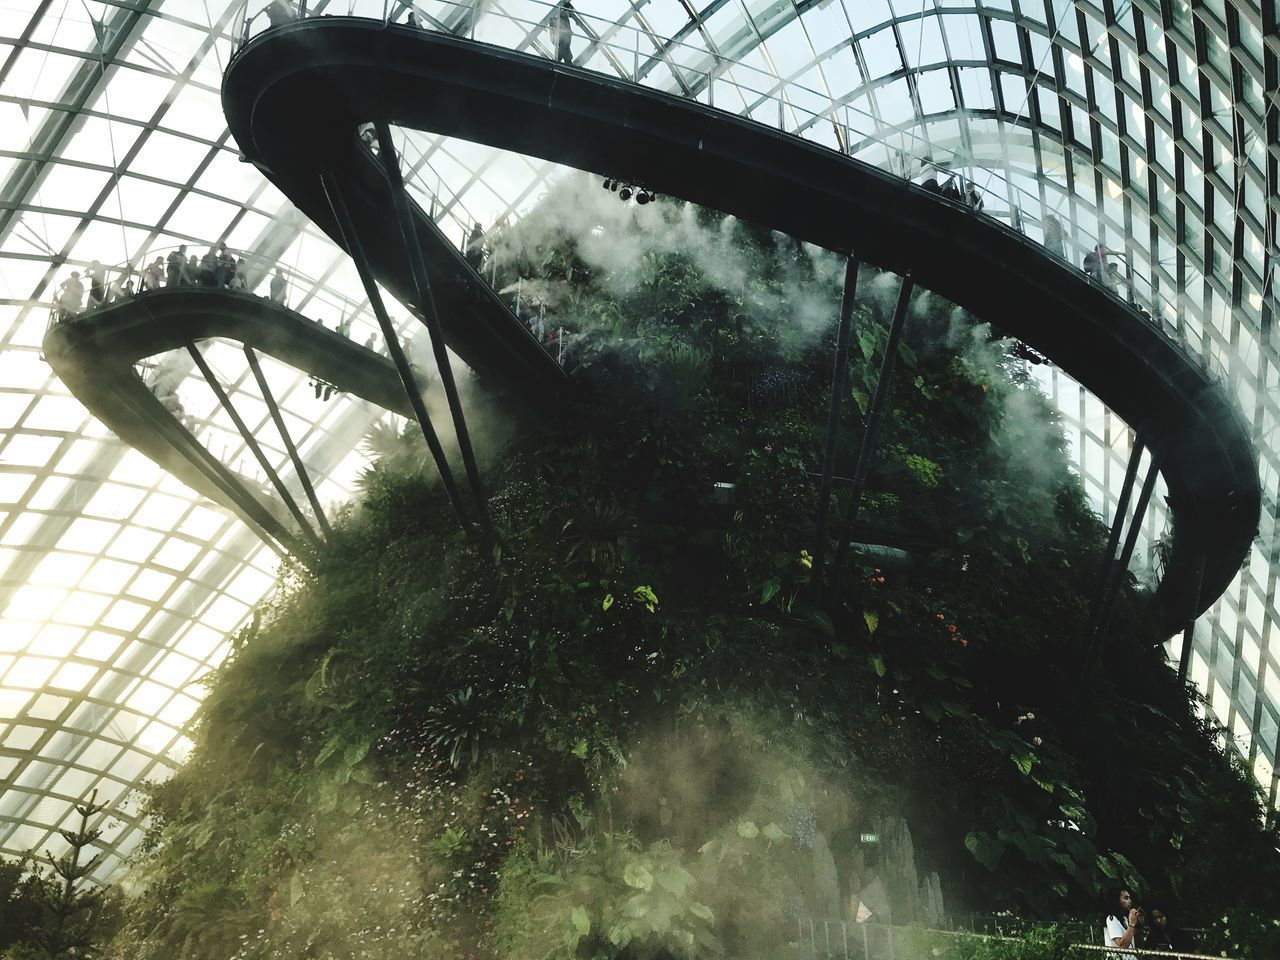 Clouddome Singapore Plant Day Built Structure Tree Architecture Indoors  Low Angle View Greenhouse first eyeem photo